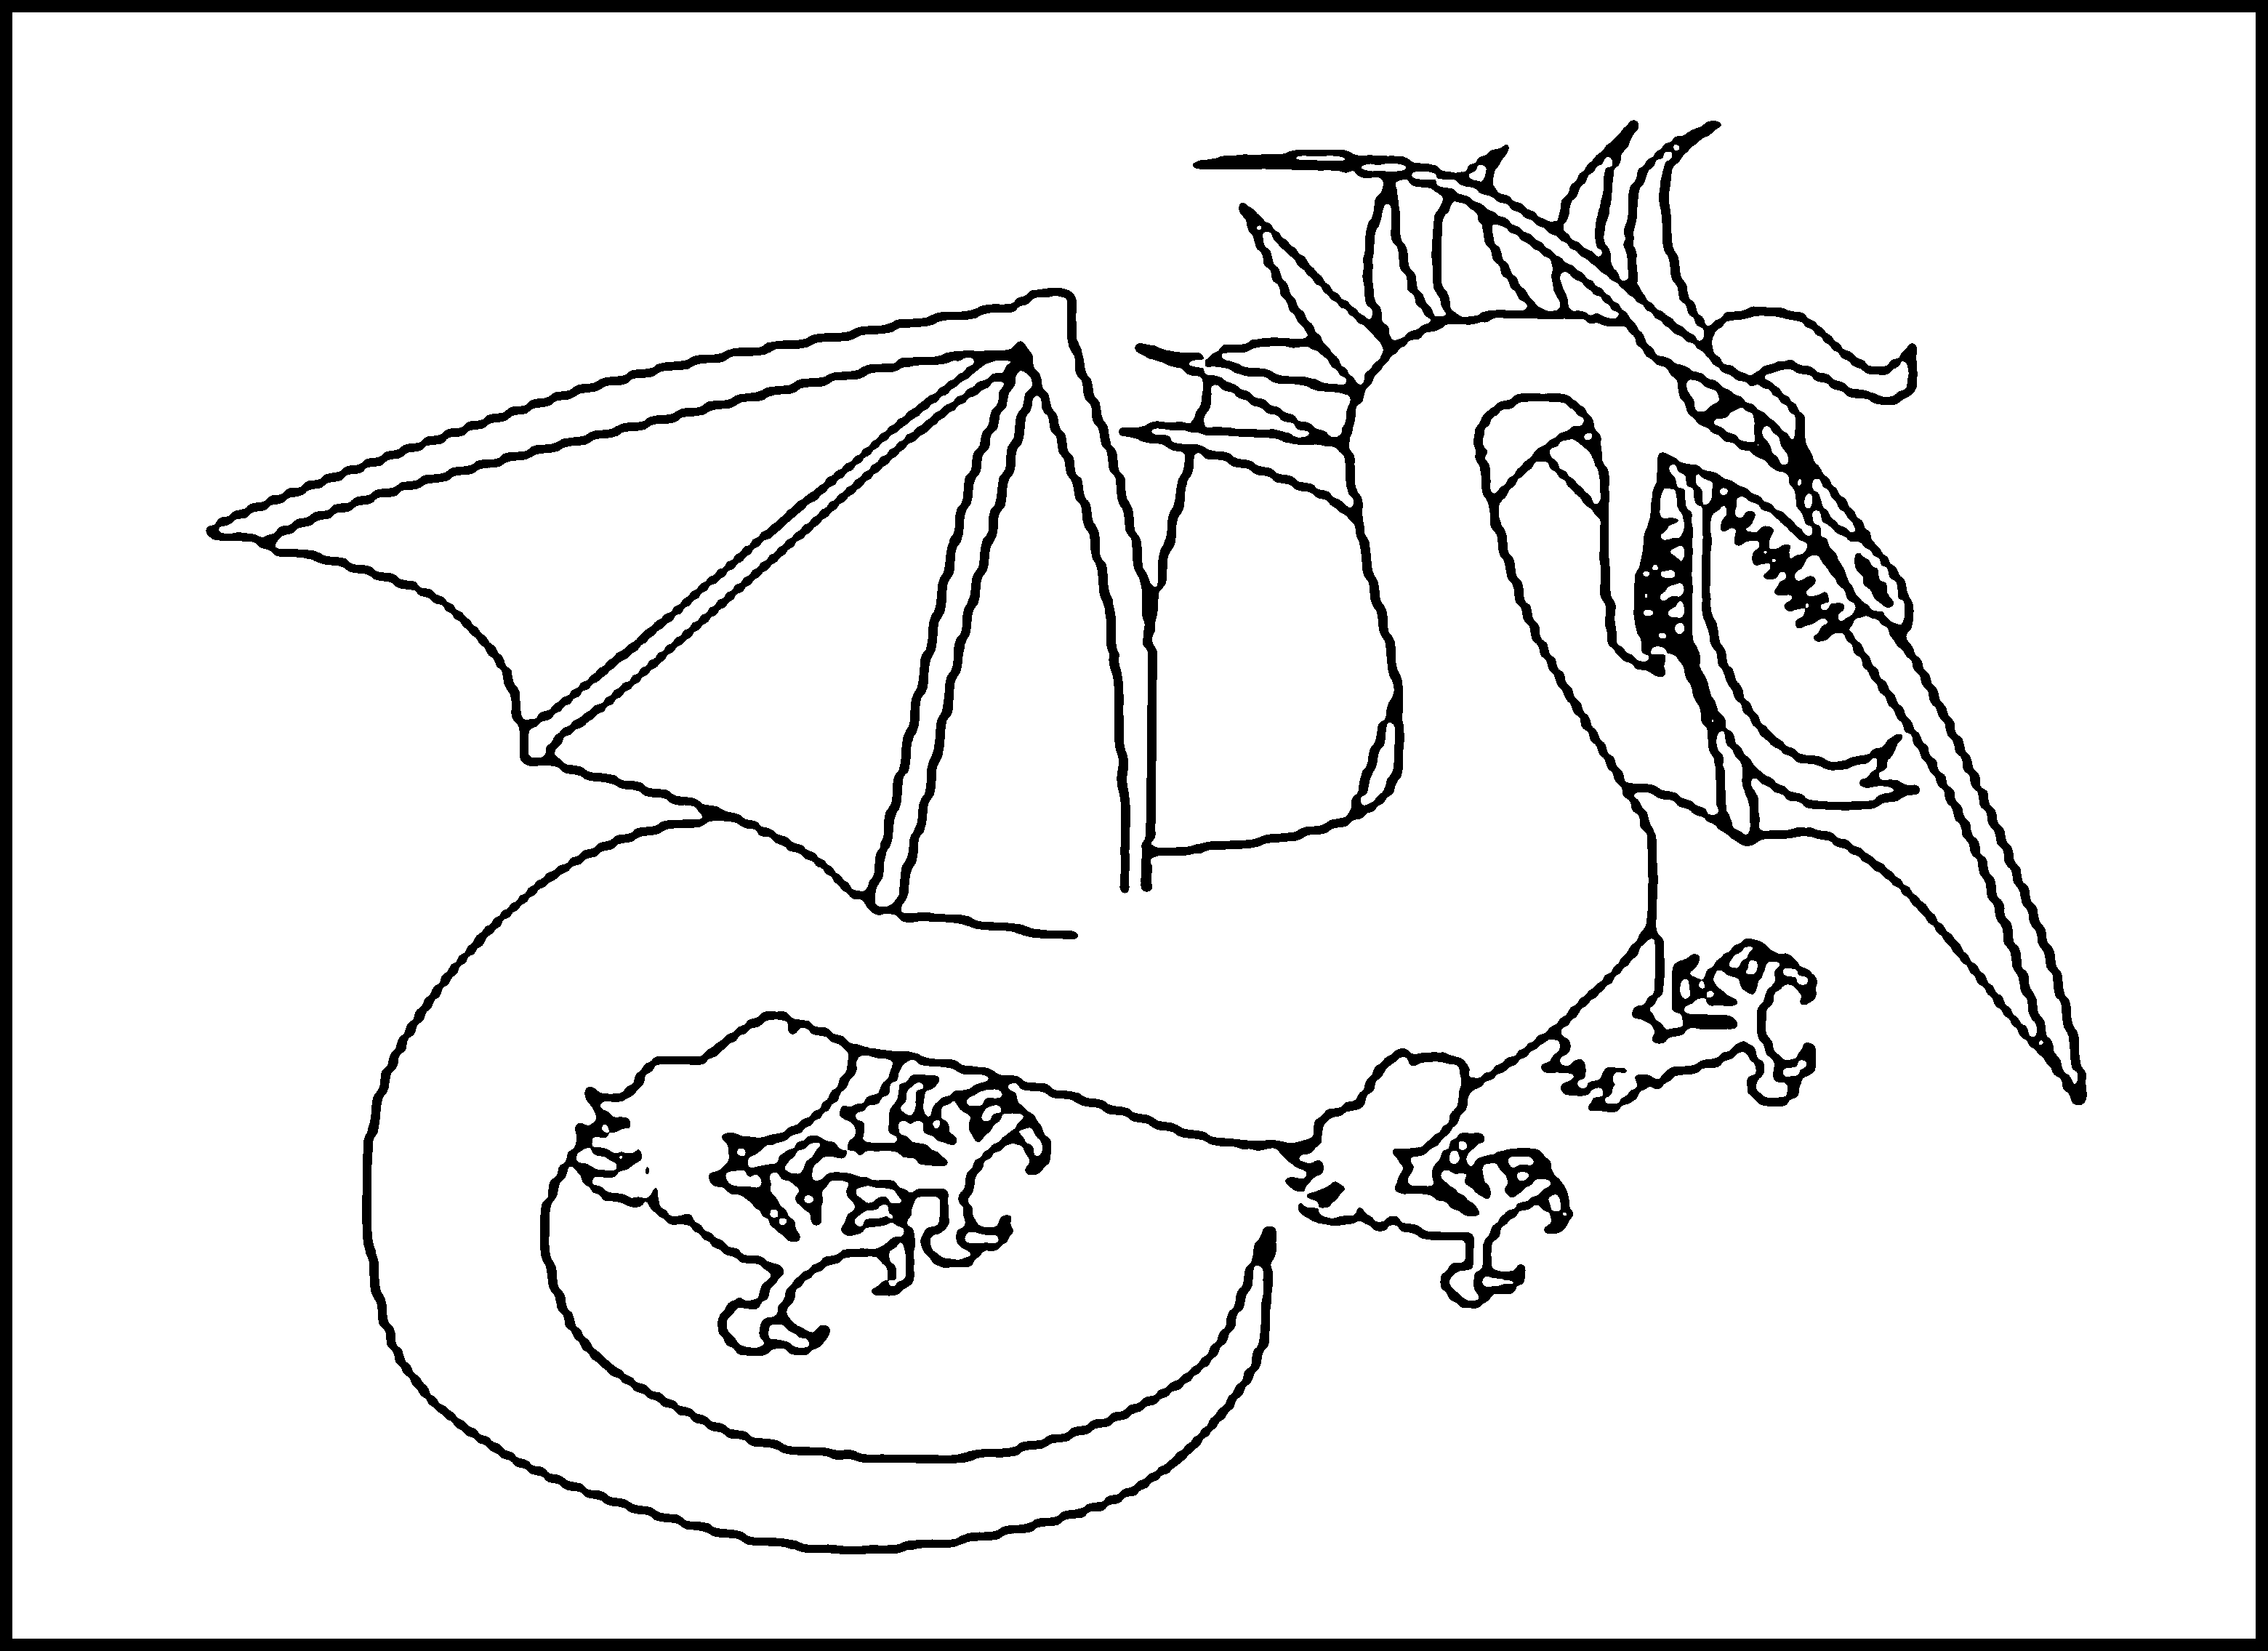 dragon coloring pages free - photo#31